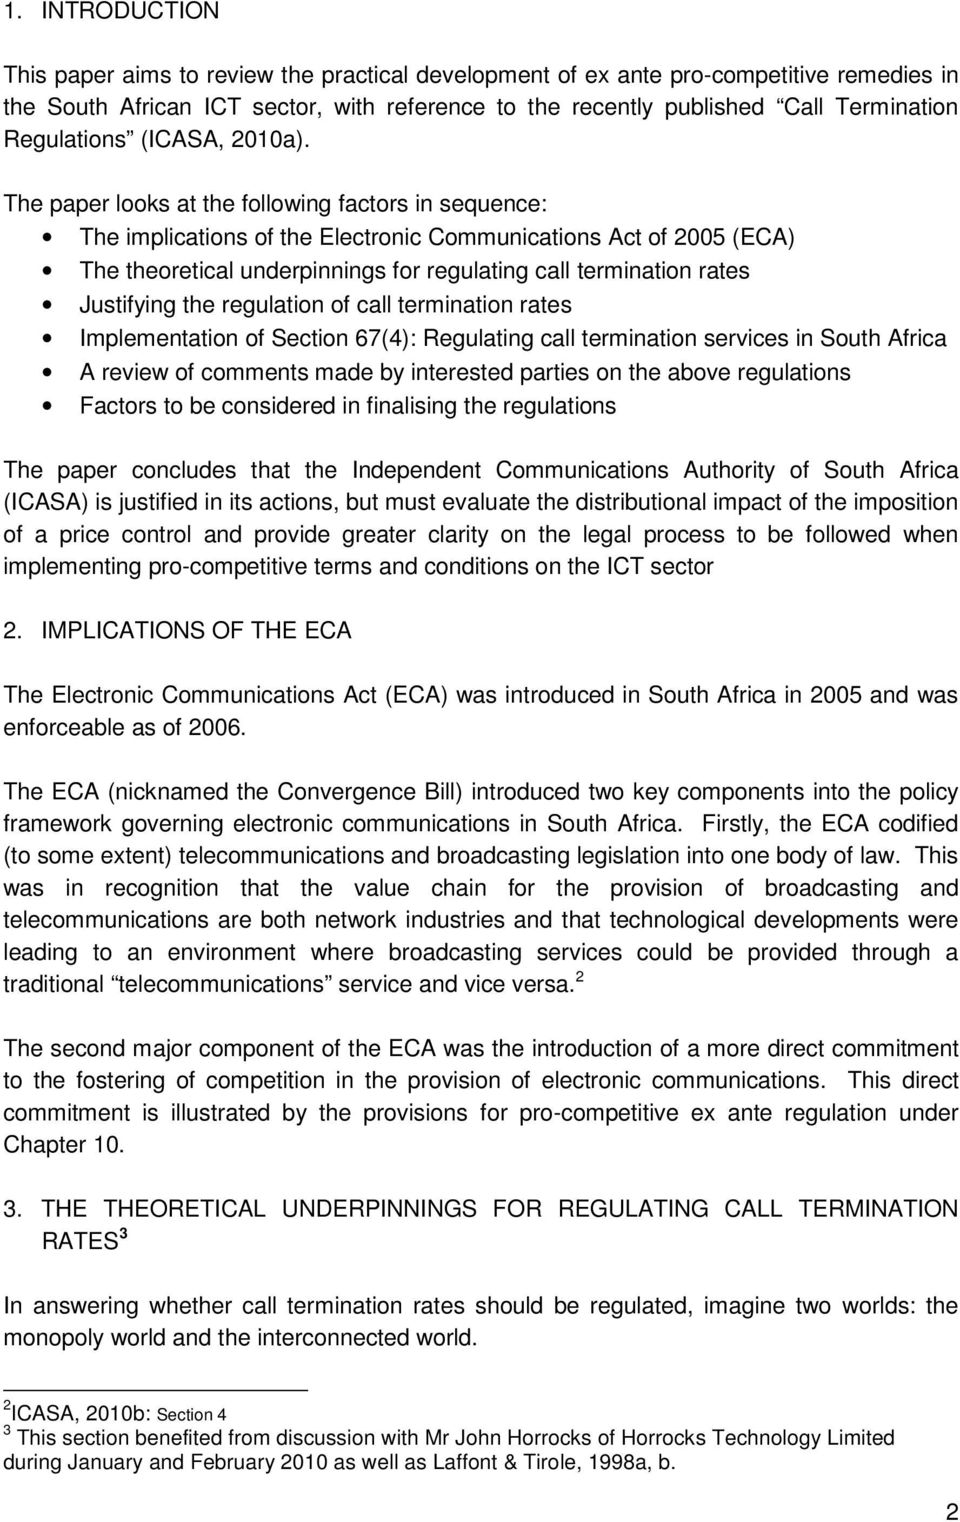 The paper looks at the following factors in sequence: The implications of the Electronic Communications Act of 2005 (ECA) The theoretical underpinnings for regulating call termination rates